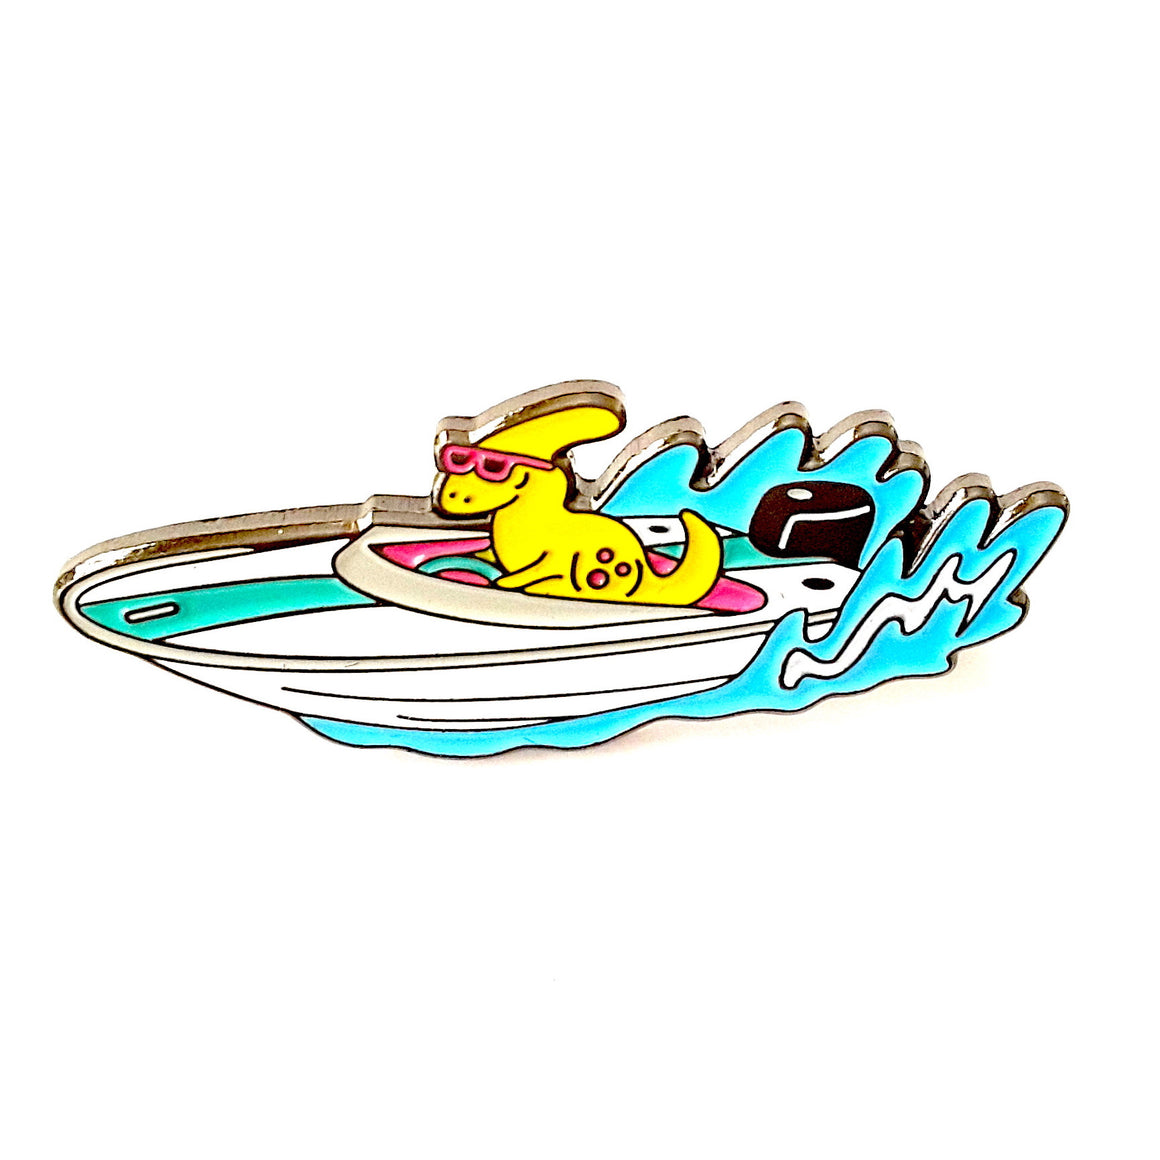 Speedboat Dino Pin by Designosaur